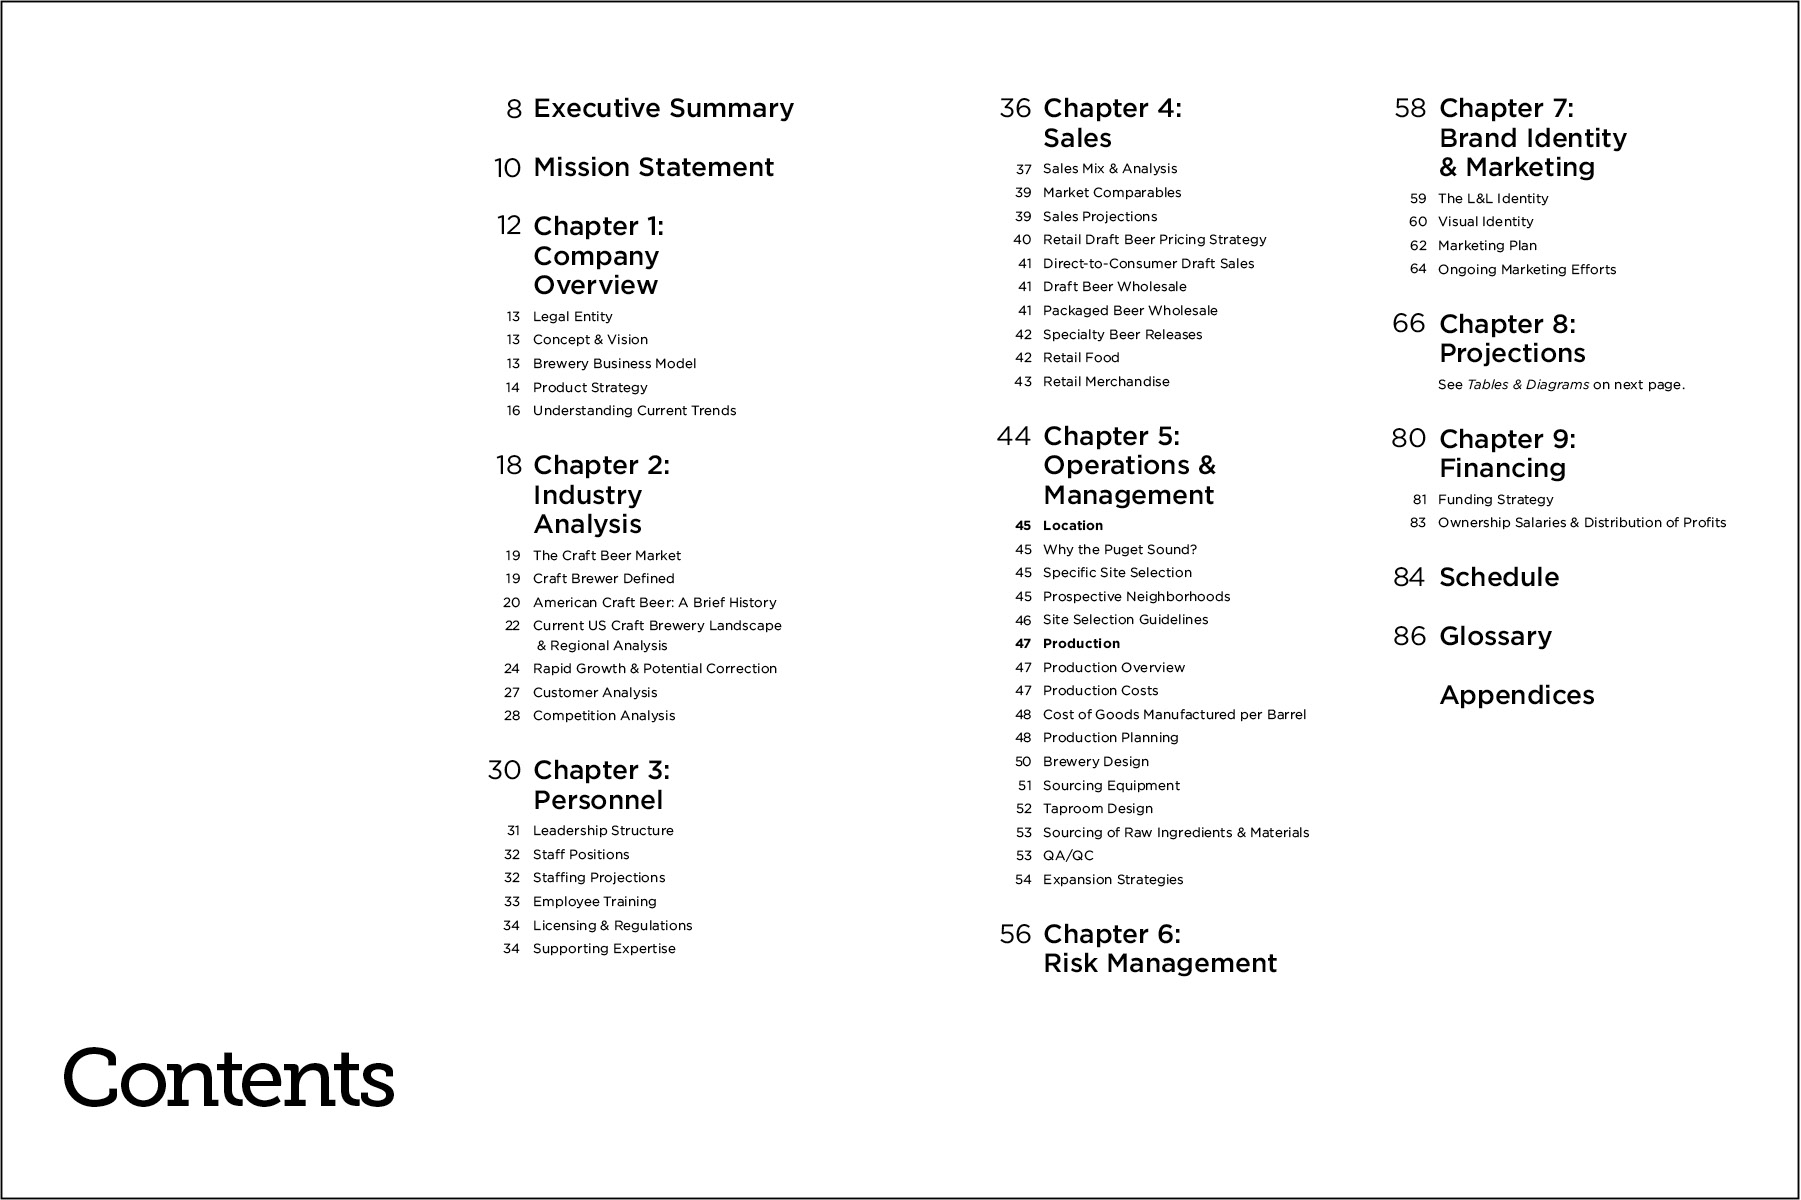 Table of Contents  from the finished business plan.